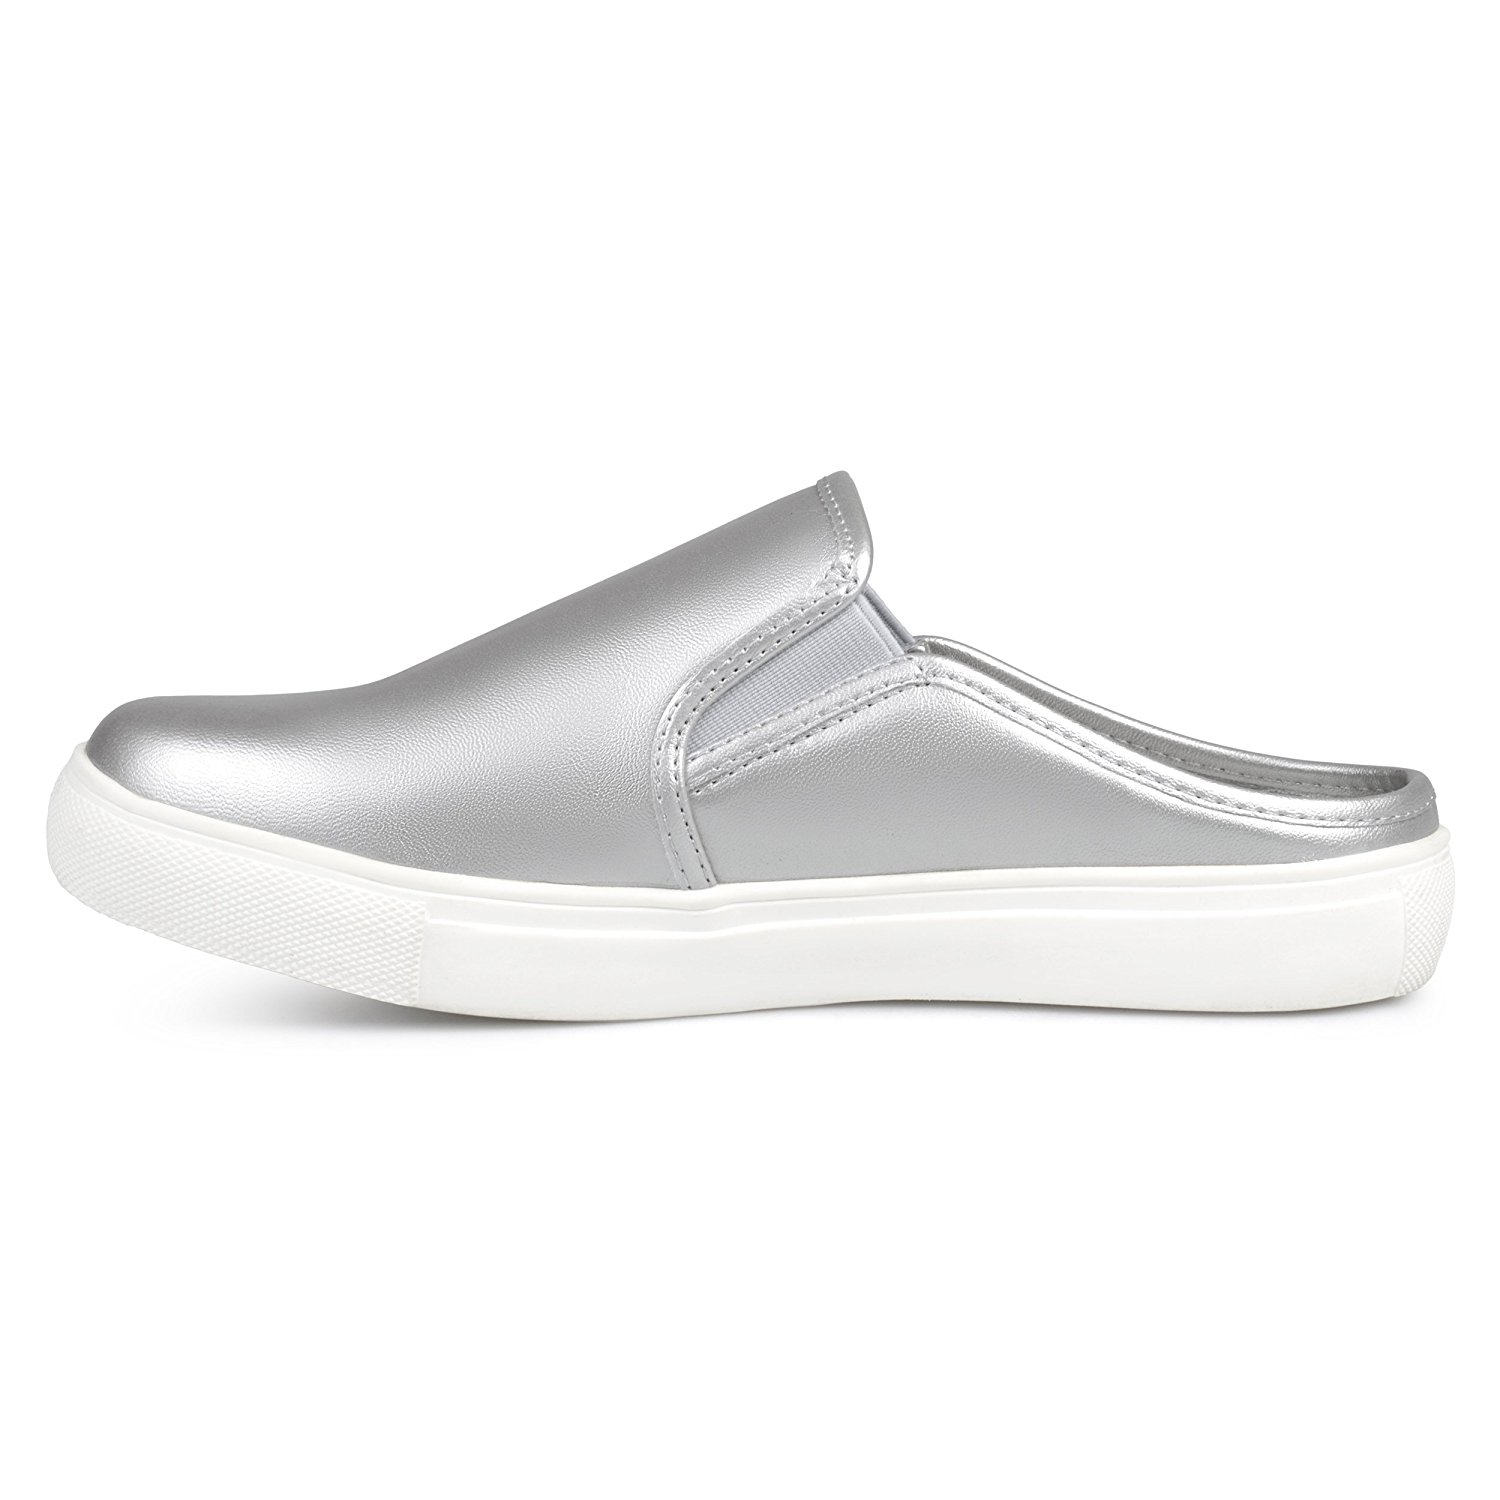 Brinley Co Sneaker Womens Wells Faux Leather Round Toe Casual Sneaker Co Silver Size 9.0 db20ea